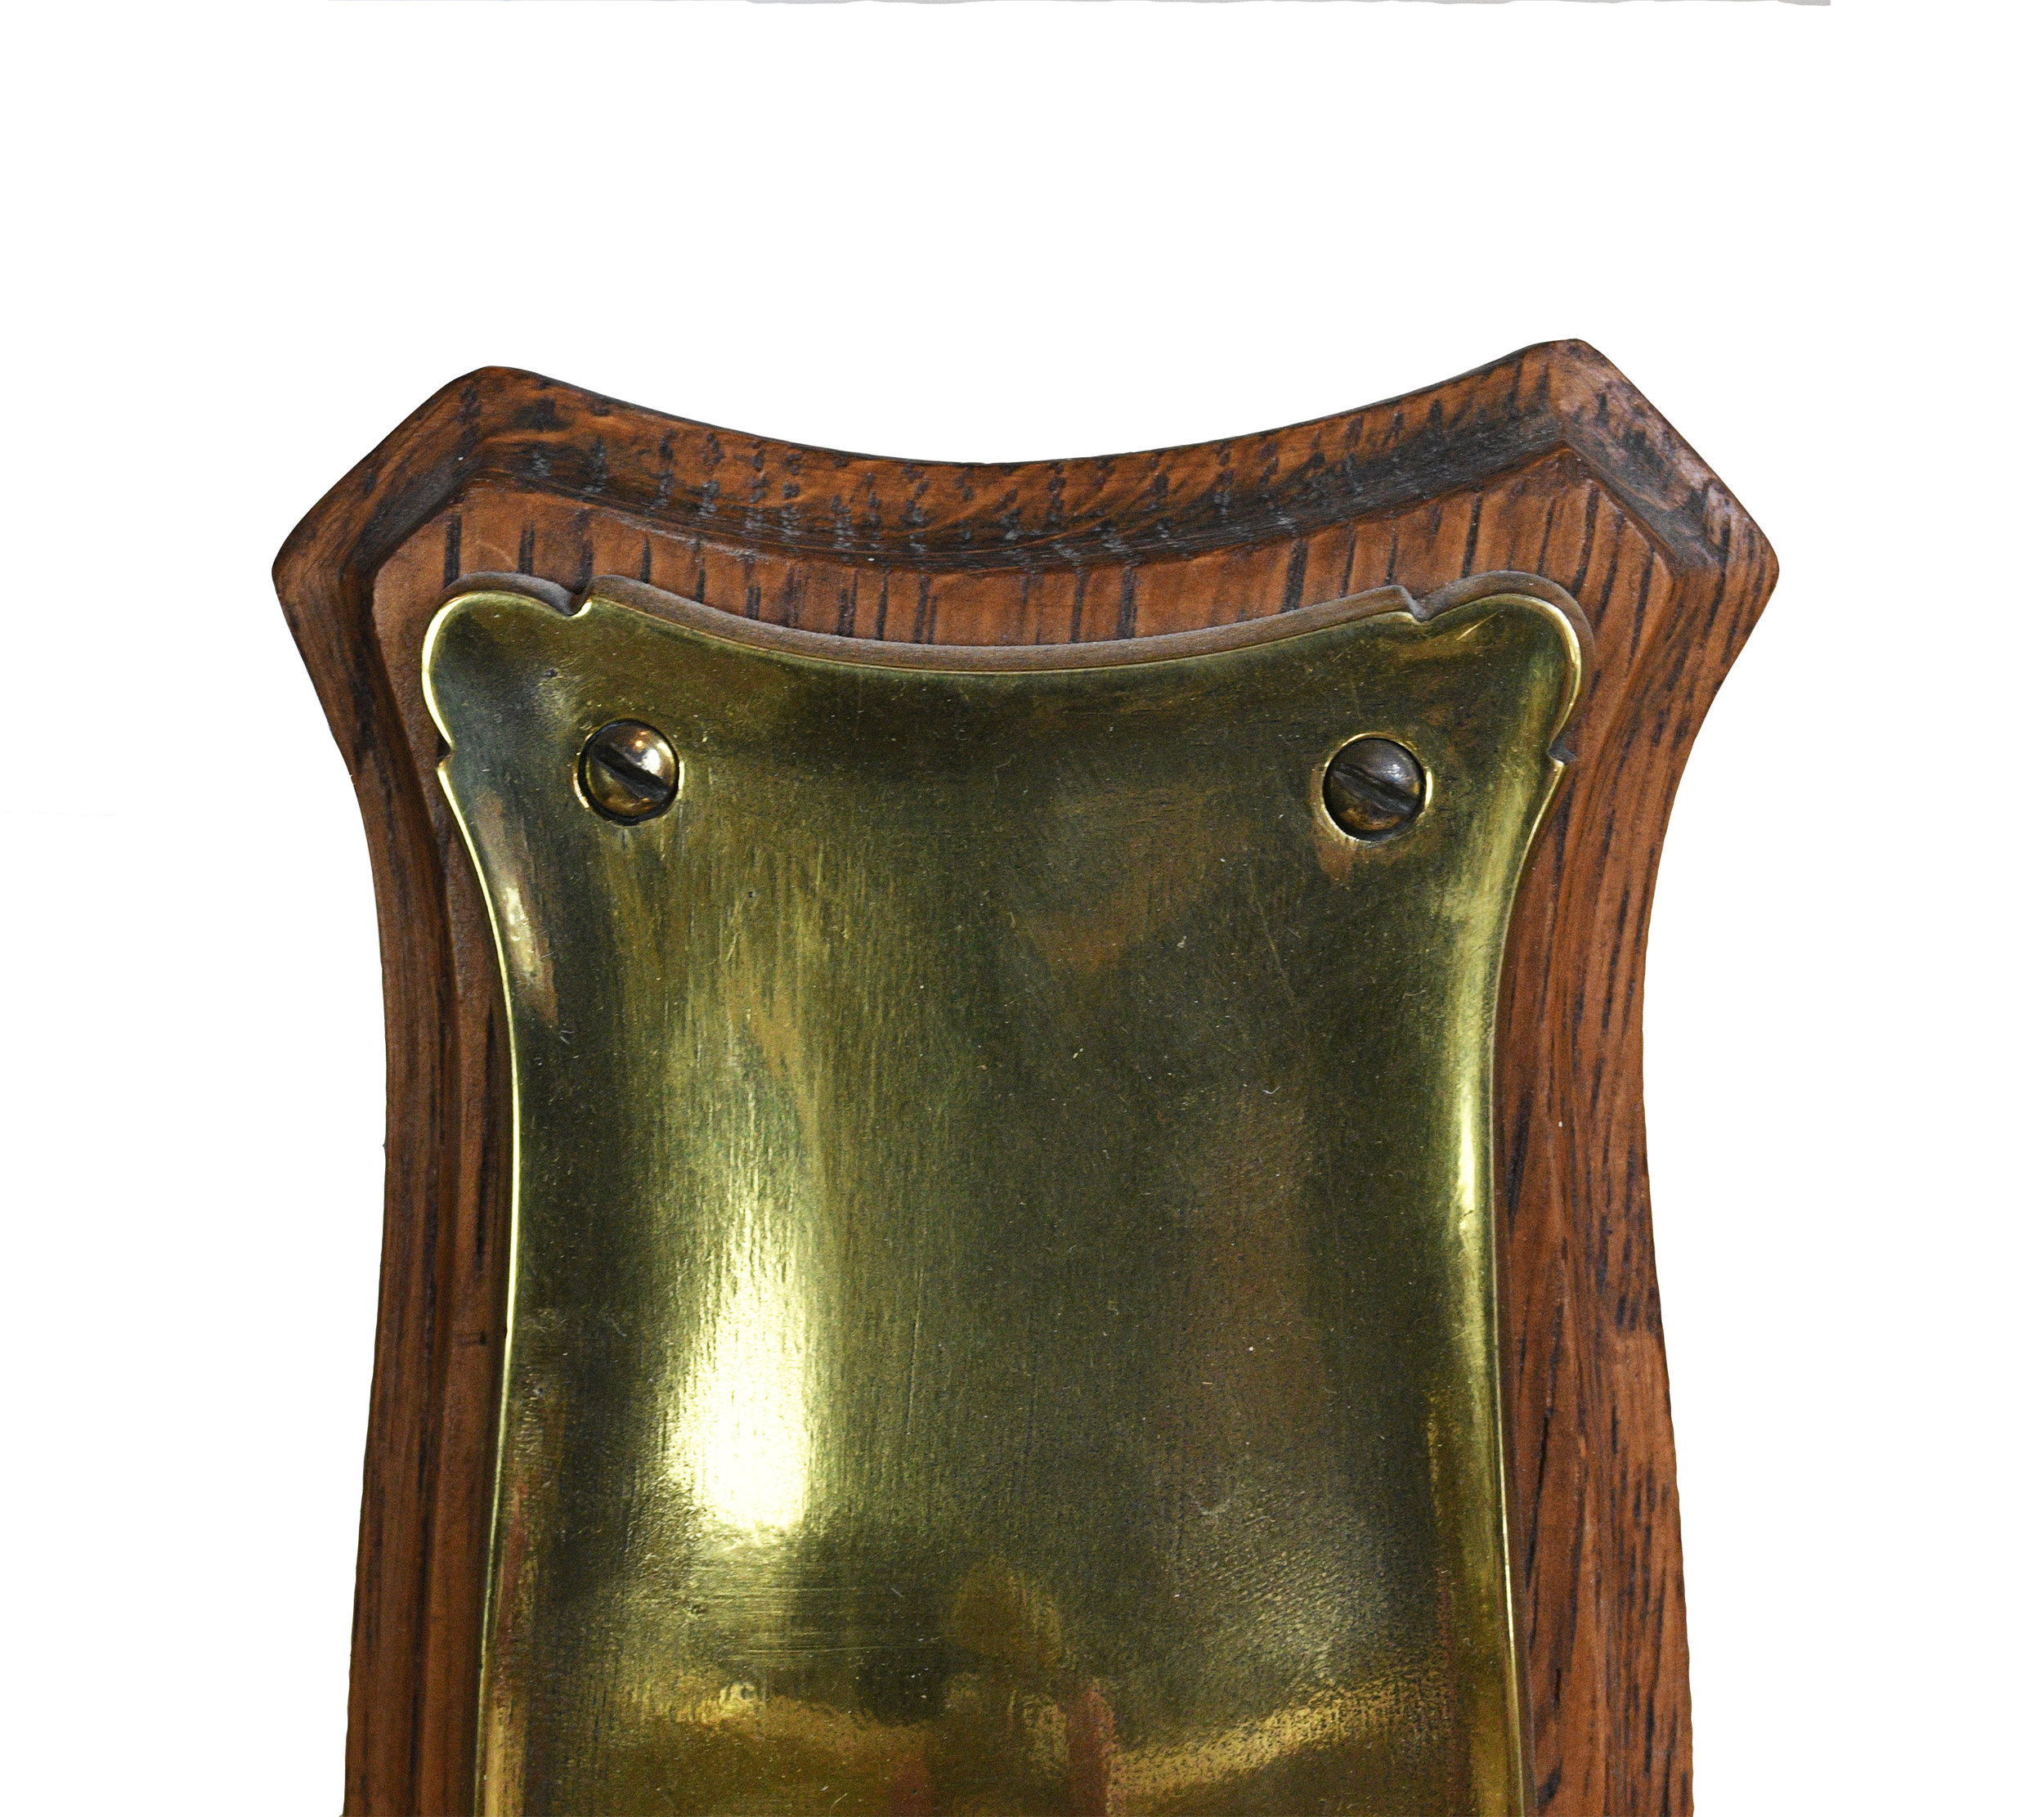 47764-two-arm-sconce-with-wood-backing-14.jpg